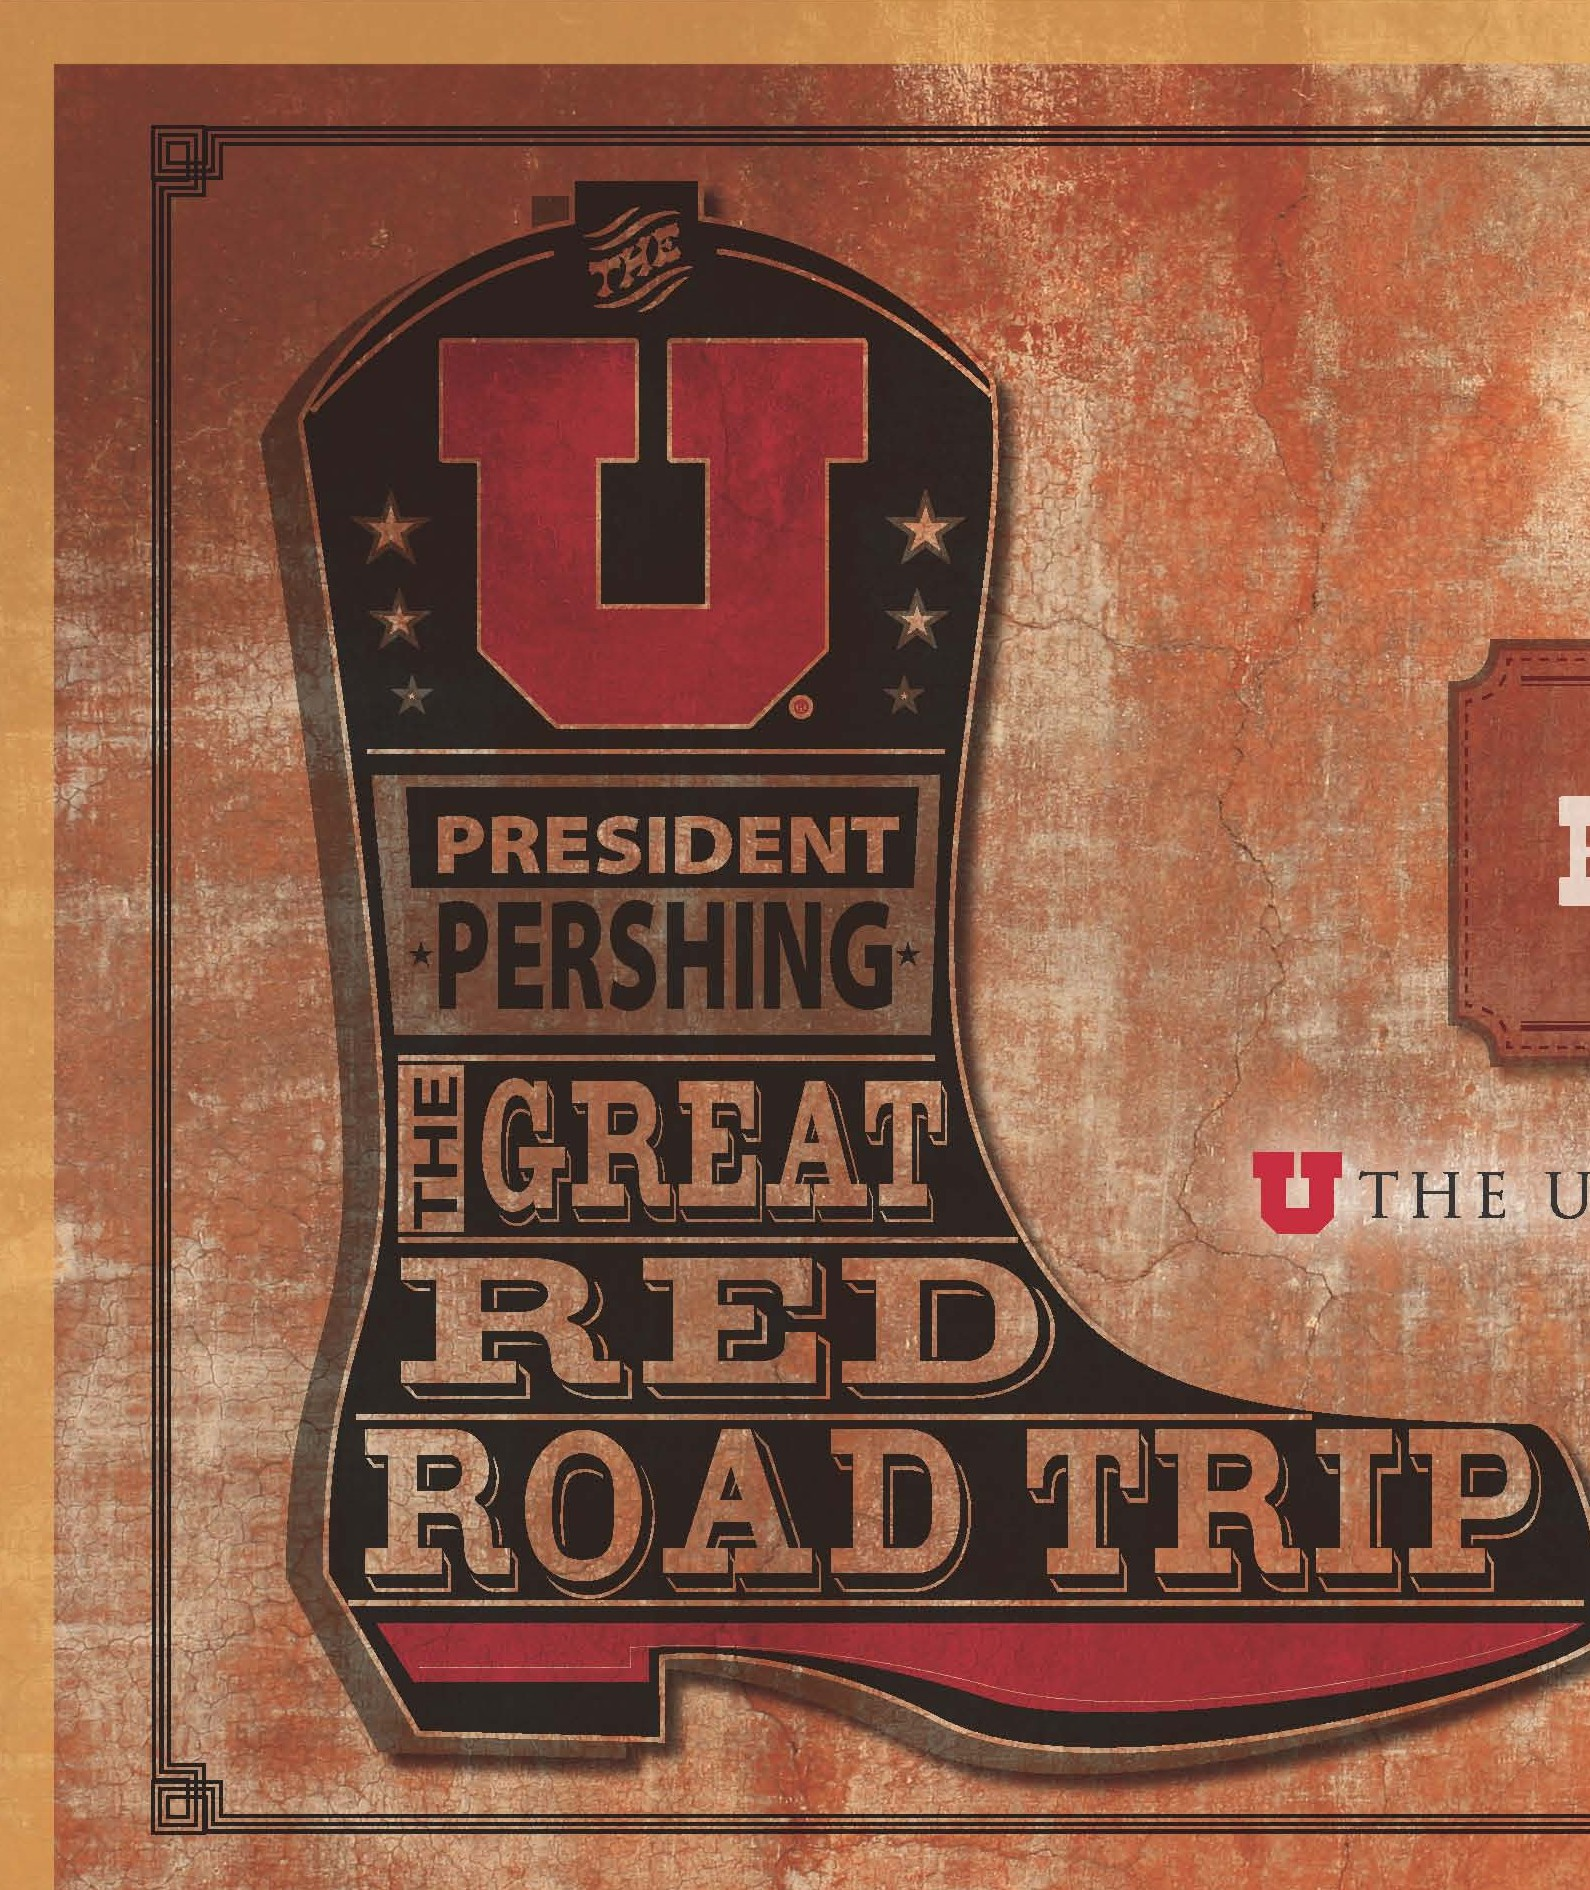 The Great Red Road Trip. Bringing the U to You.